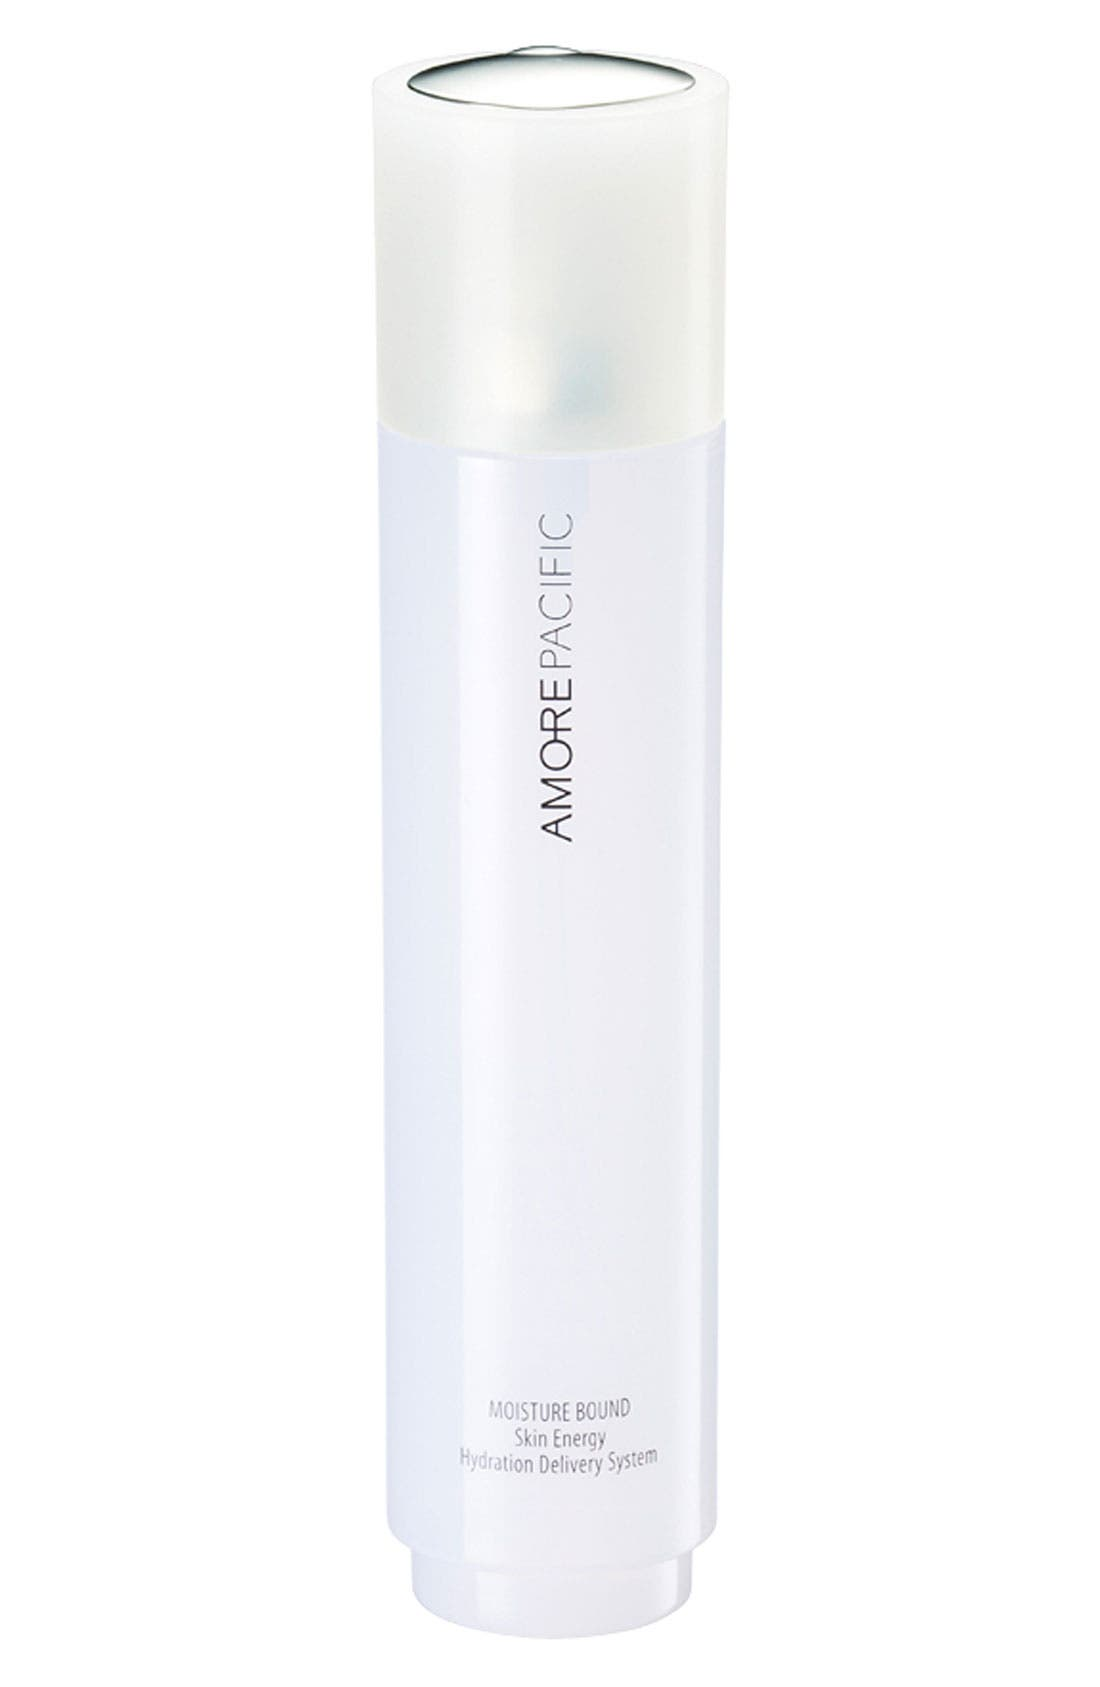 AMOREPACIFIC Moisture Bound Skin Energy Hydration Delivery System